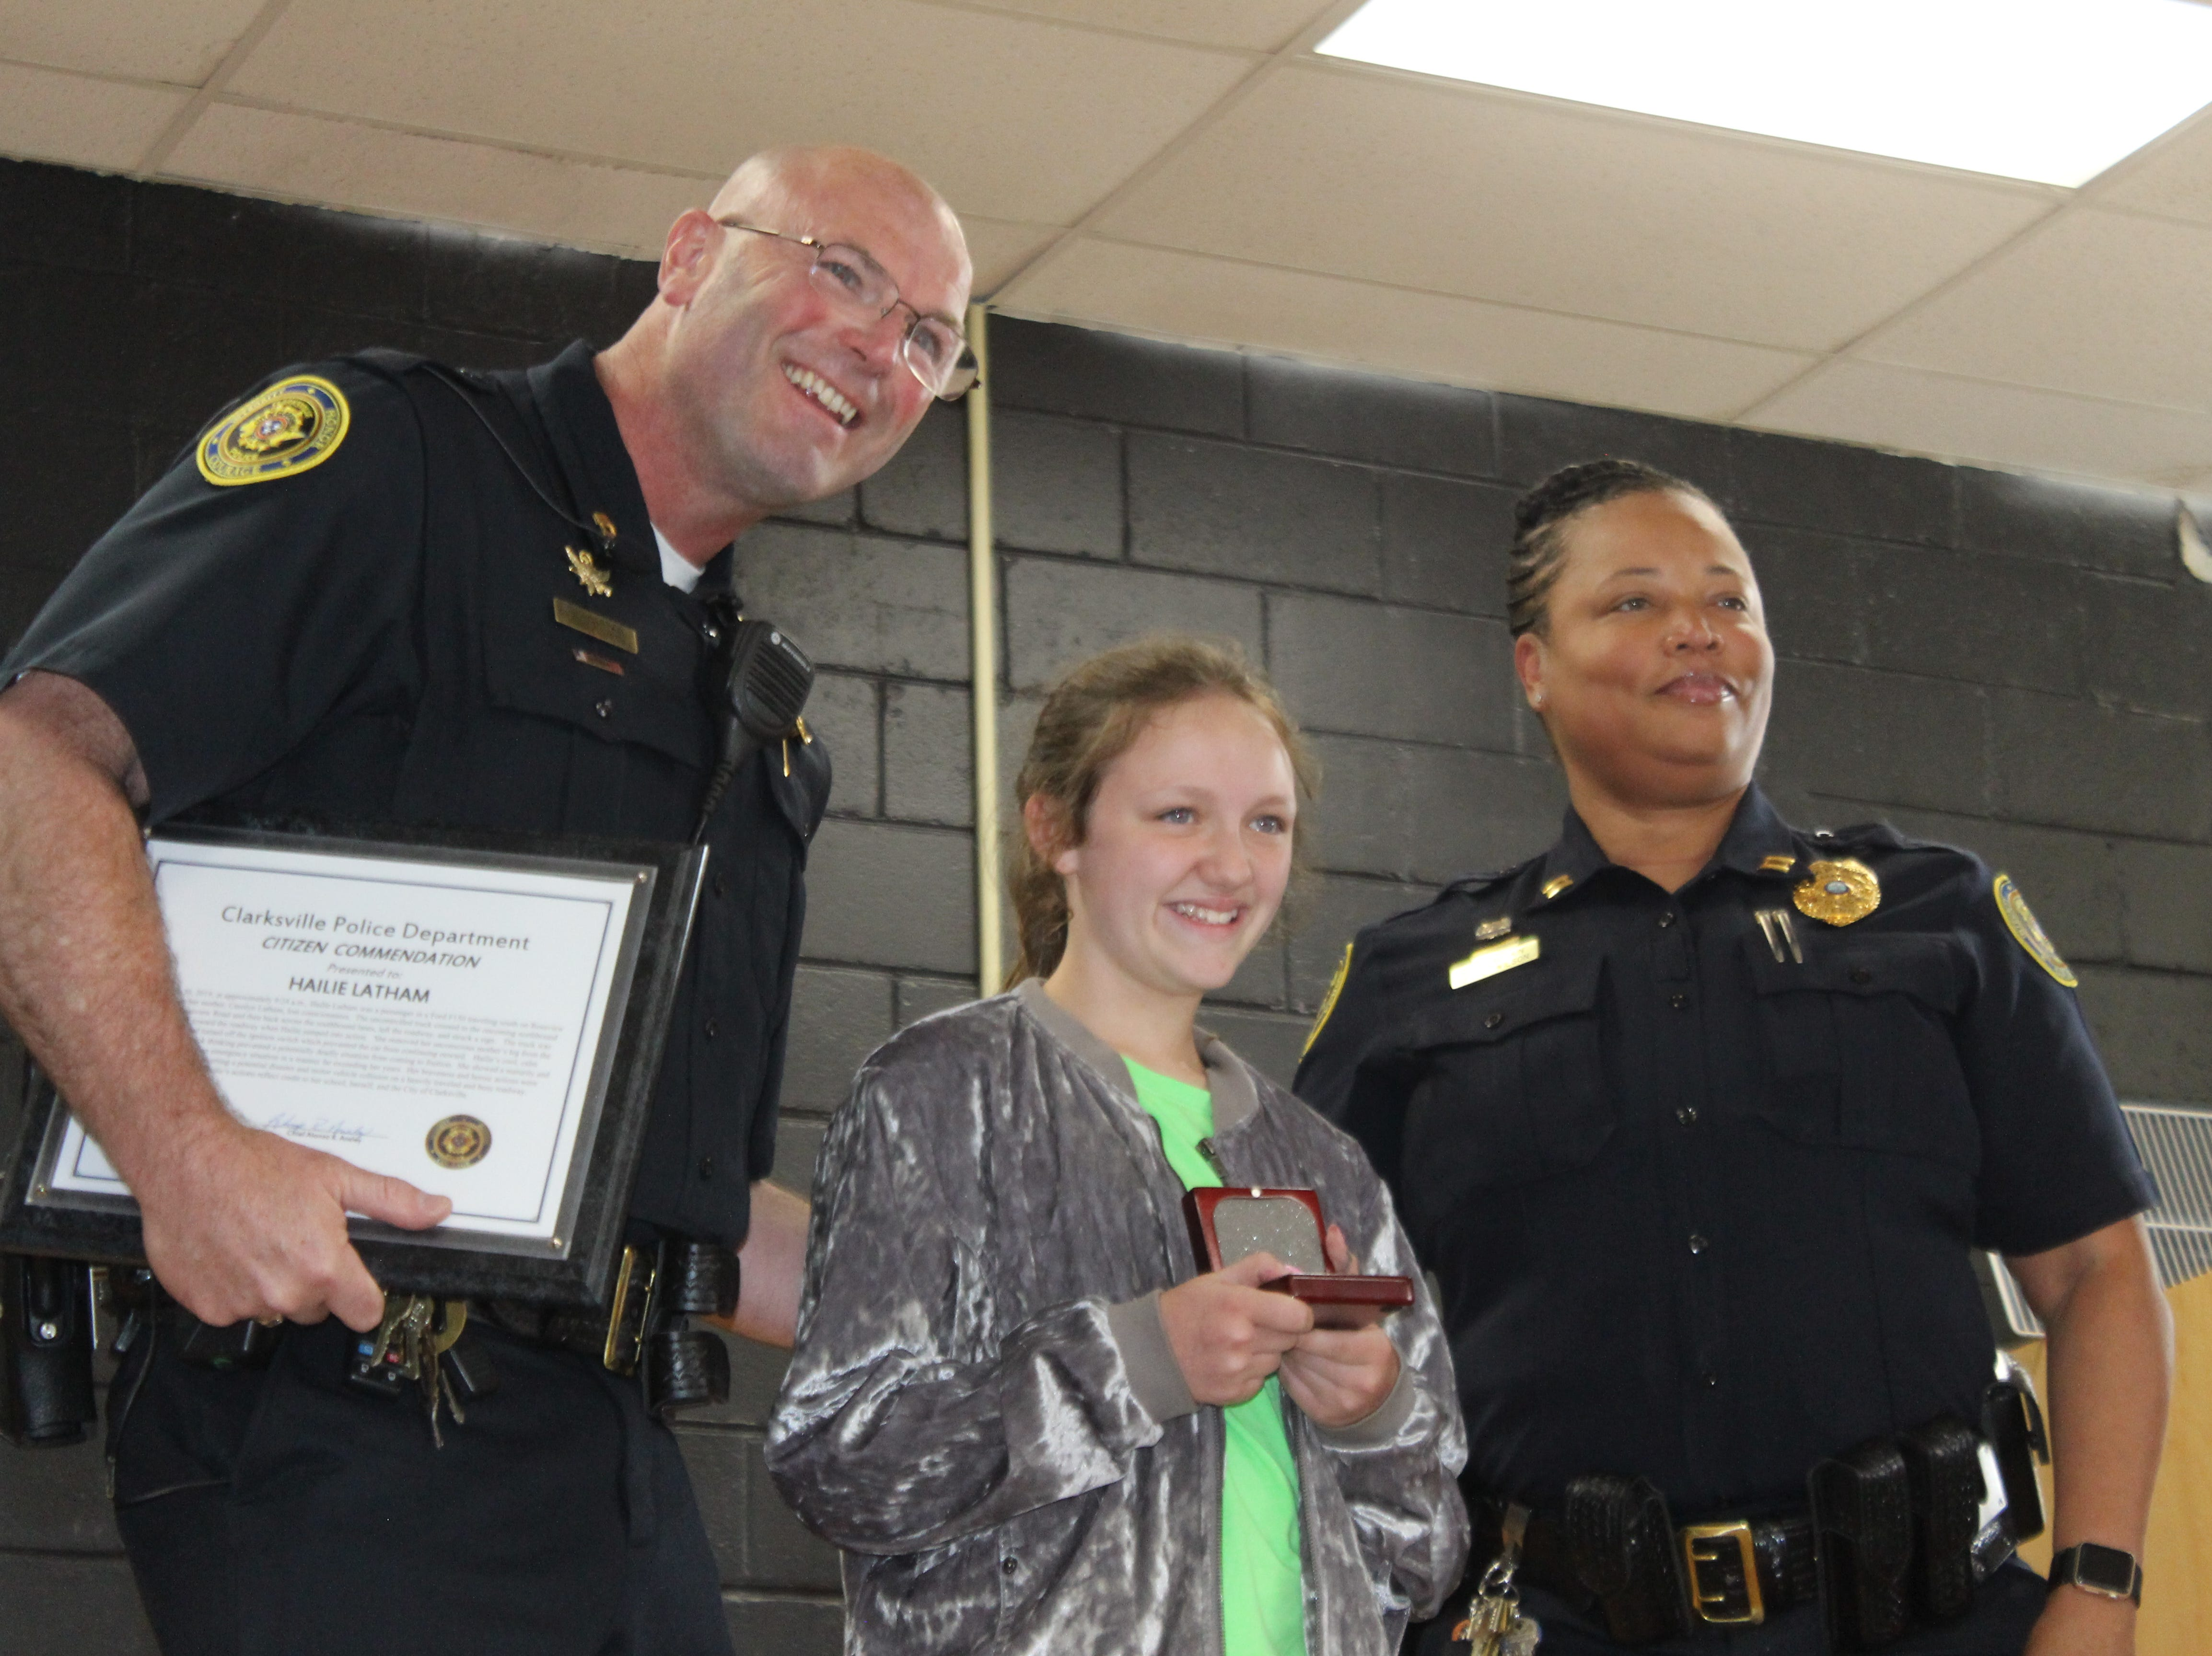 Hailie Latham, a 10-year old fourth grader at Moore Magnet Elementary, receives an award as Clarksville Police honor her for heroism during a ceremony on May 15, 2019.